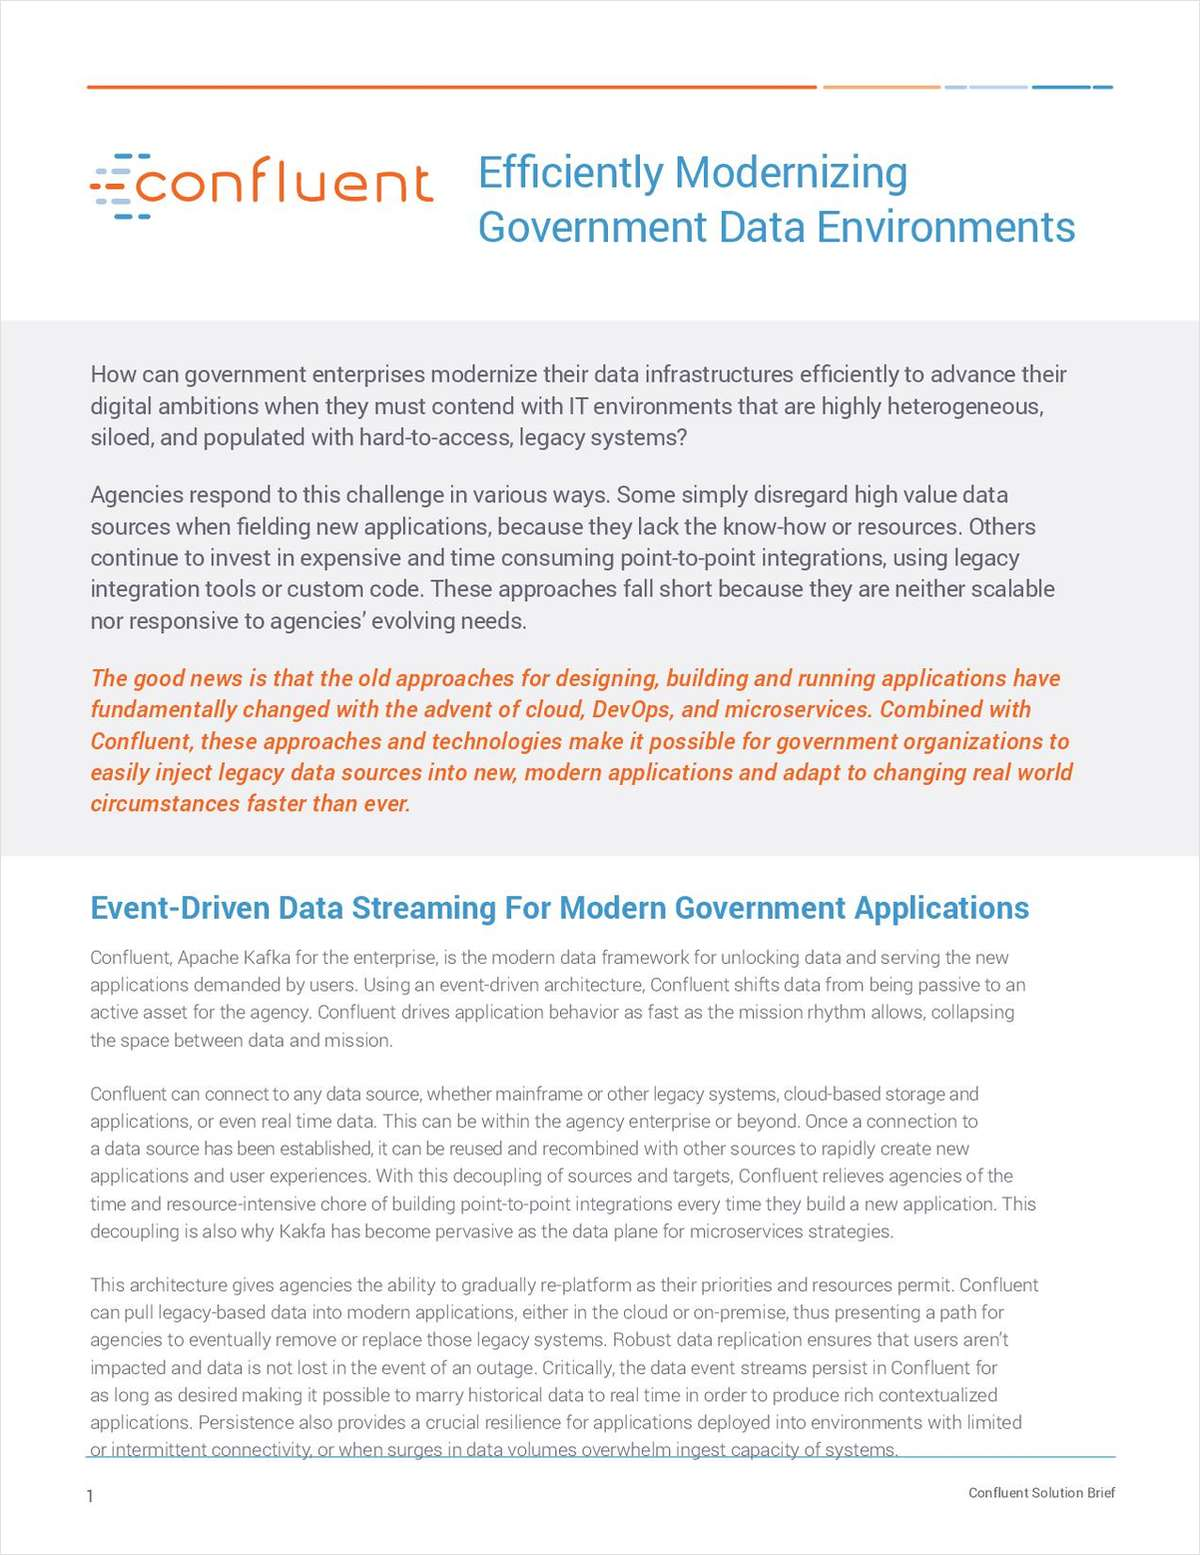 Efficiently Modernizing Government Data Environments with Apache Kafka